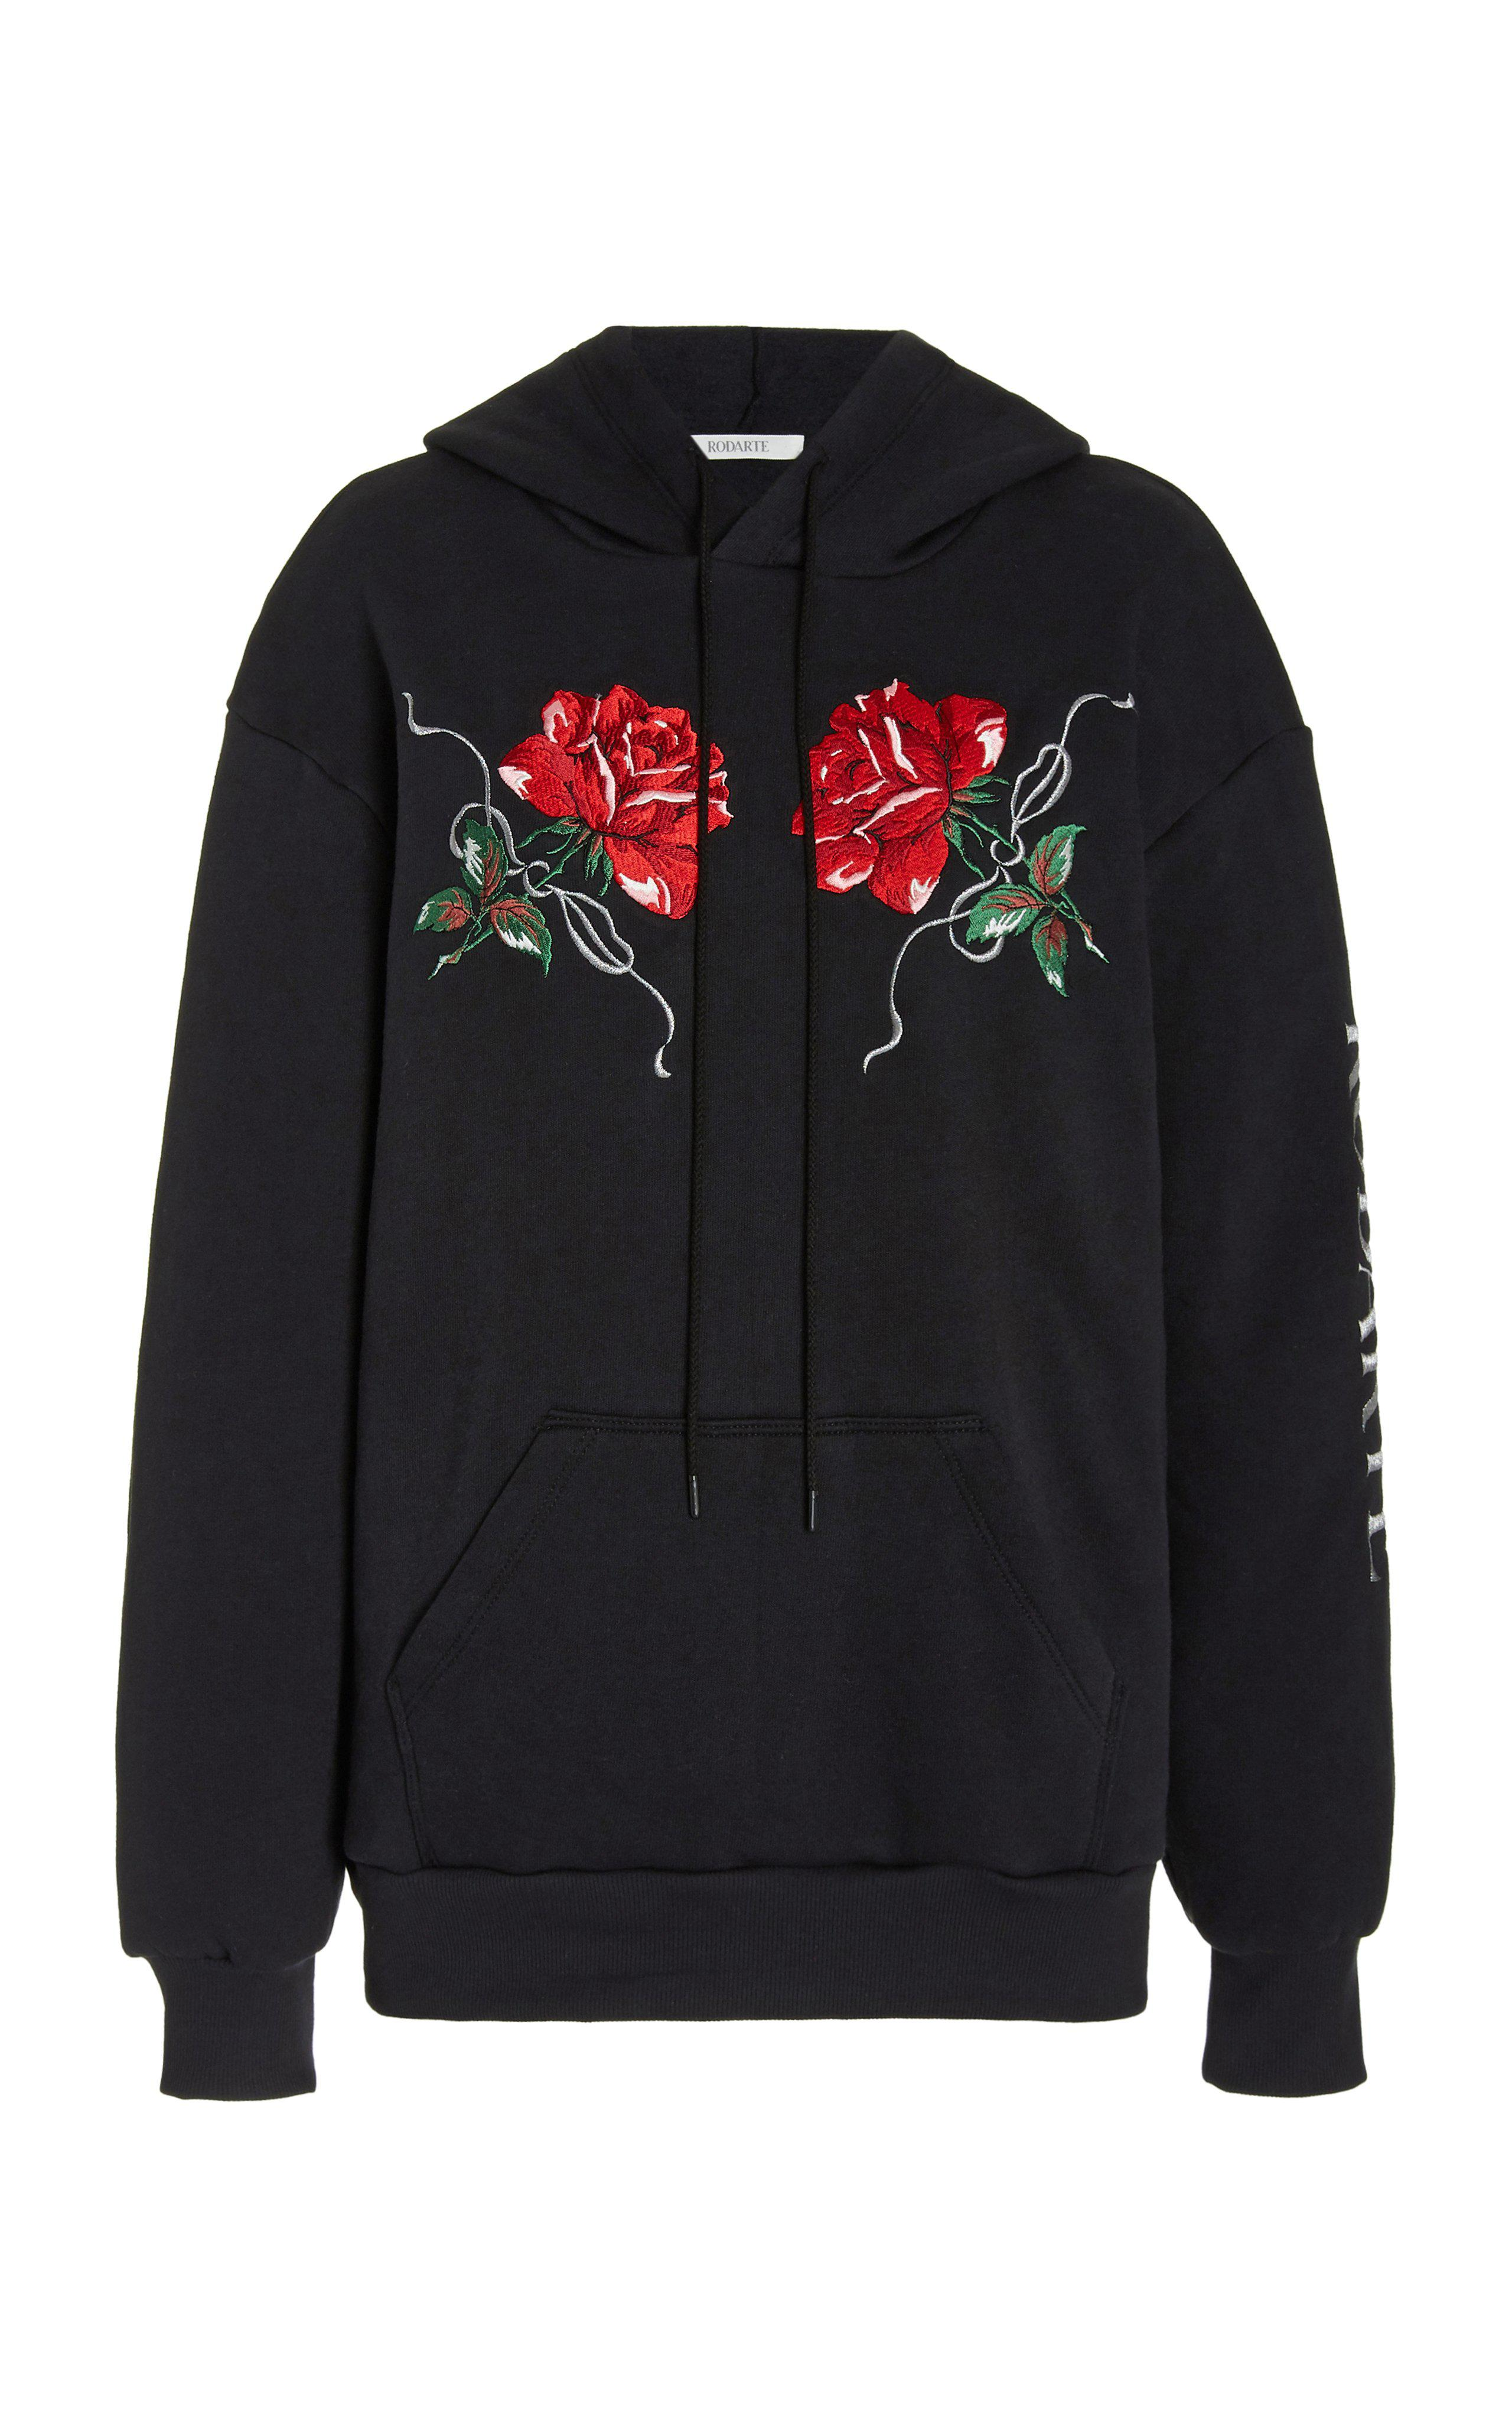 RED ROSE EMBROIDERED HOODIE 3